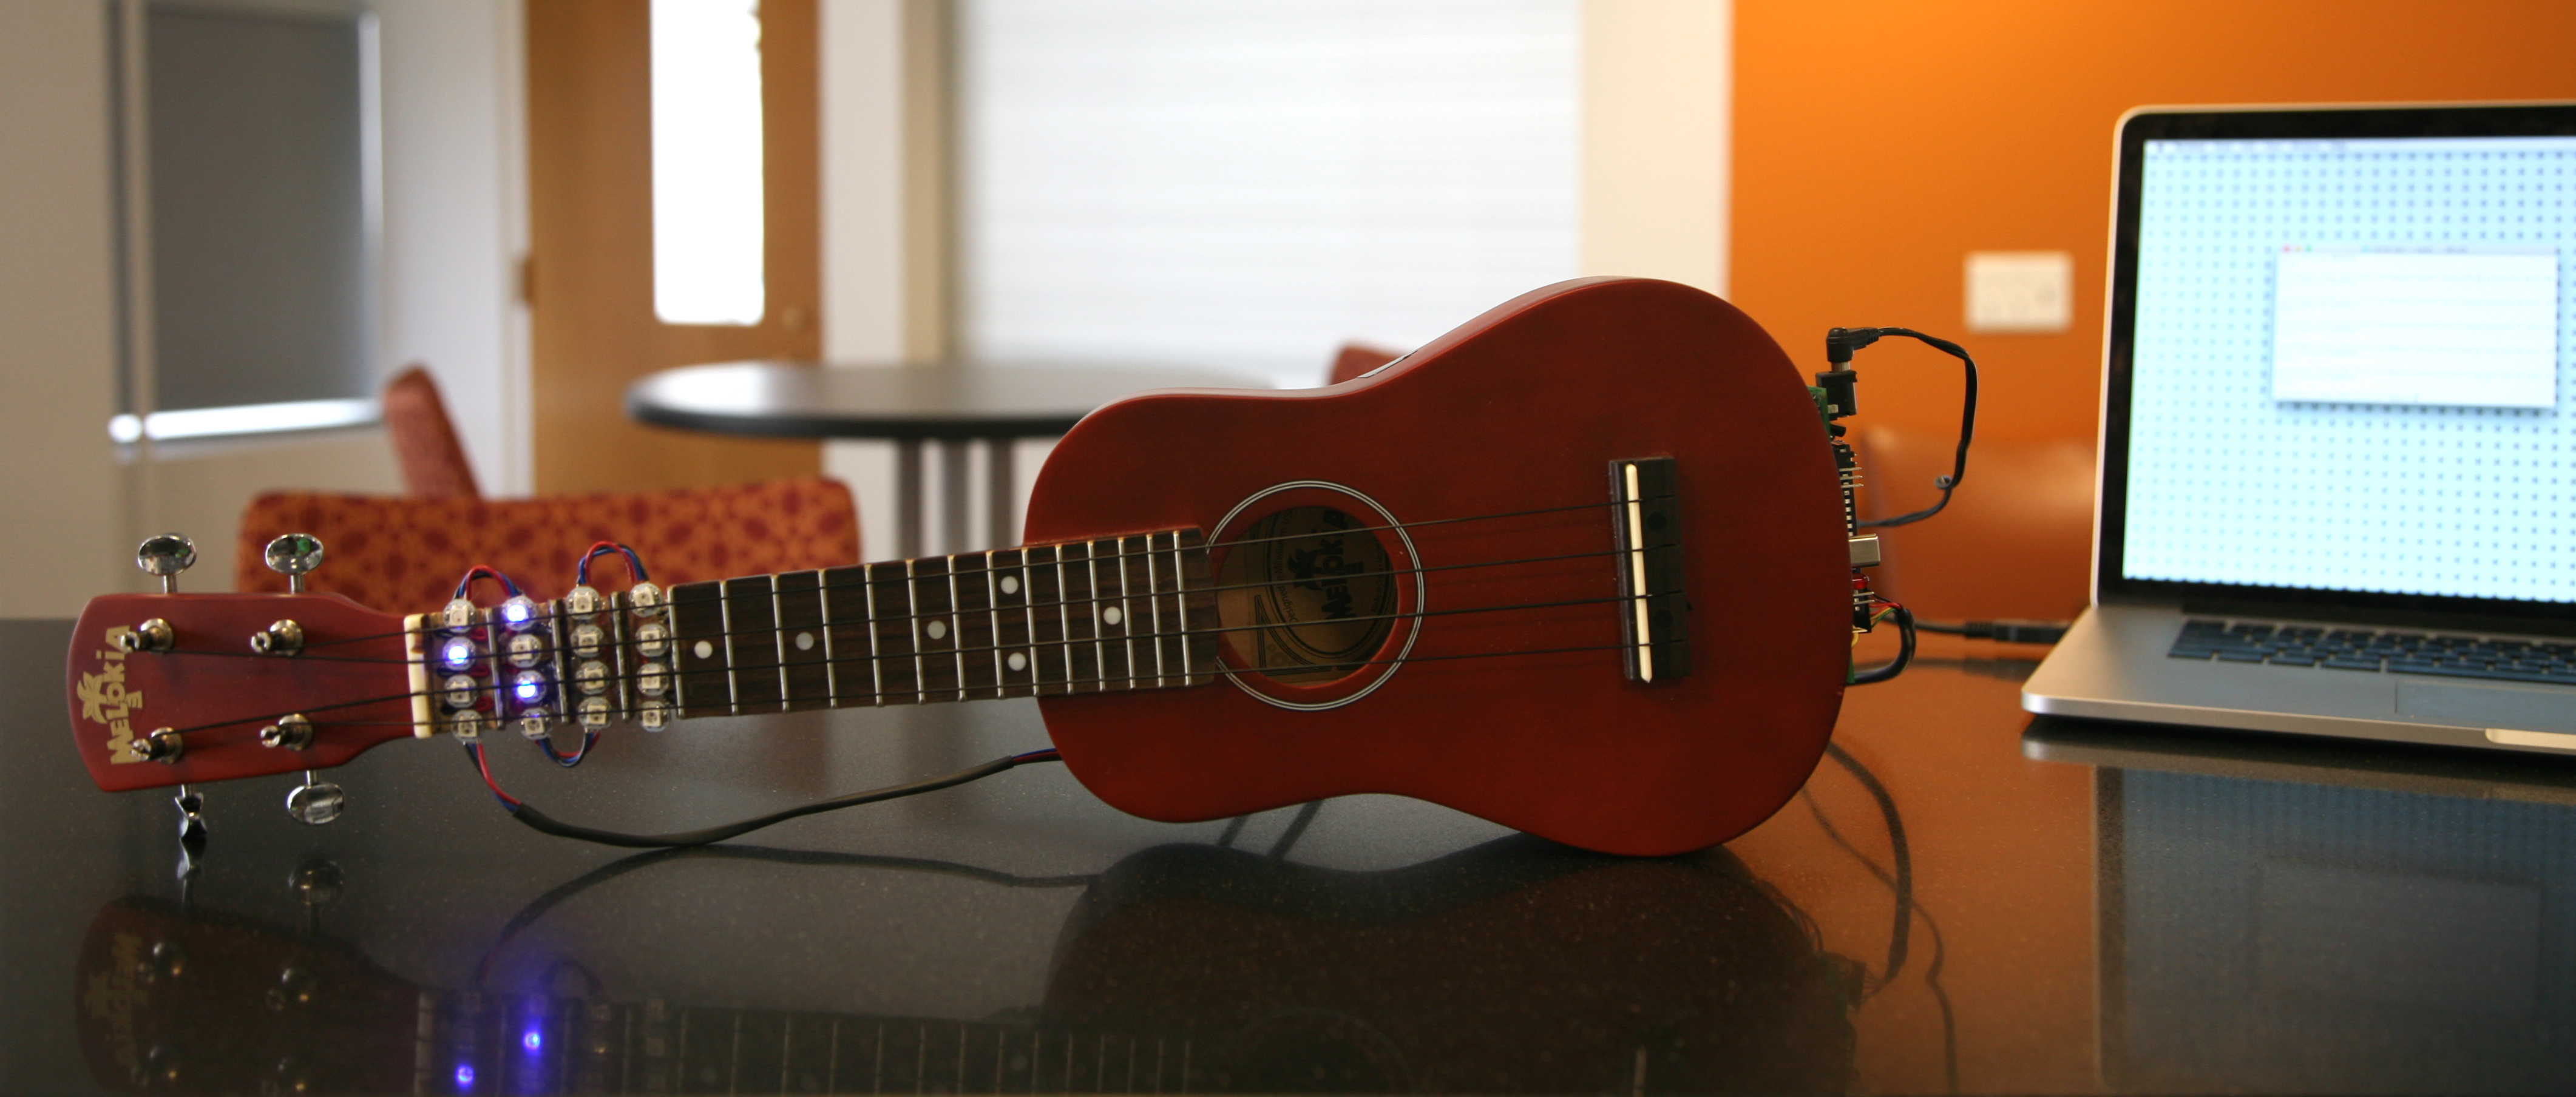 This Embedded Ukulele Can Teach You To Play Chords And Songs Atmel